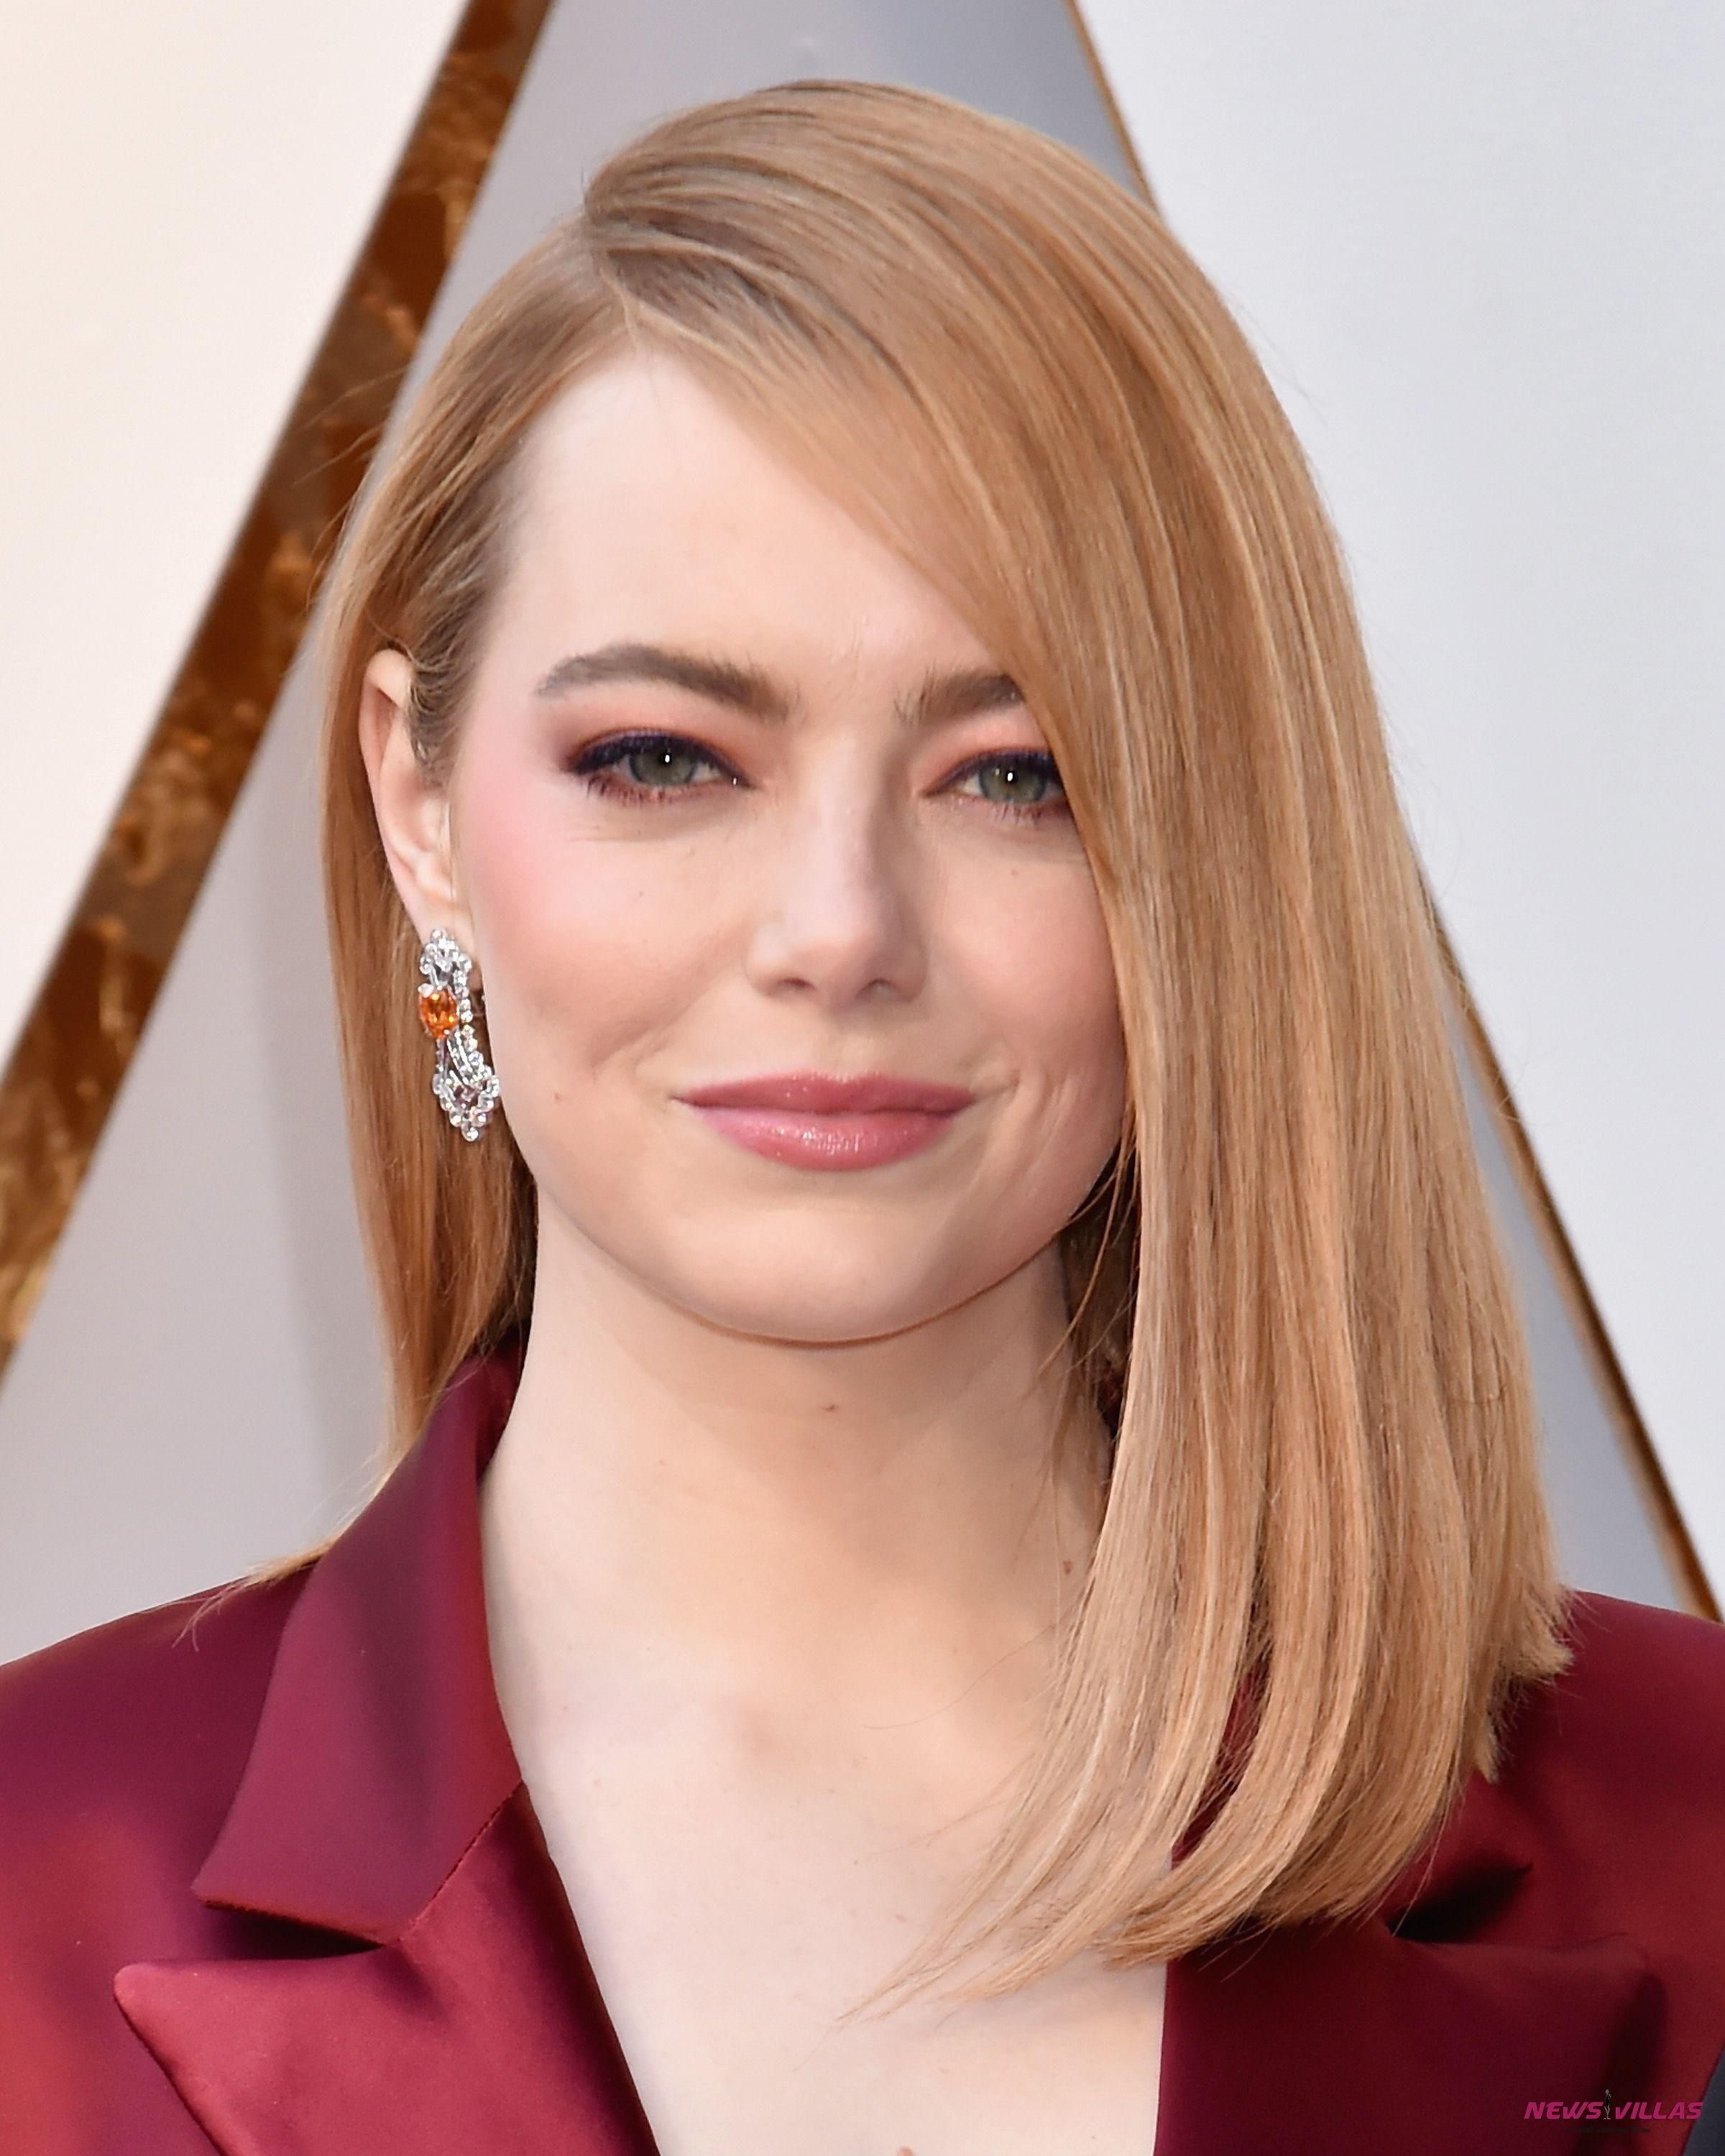 Emma Stone - All Hot HD Photos and Pictures | Emma stone, Stone and ...